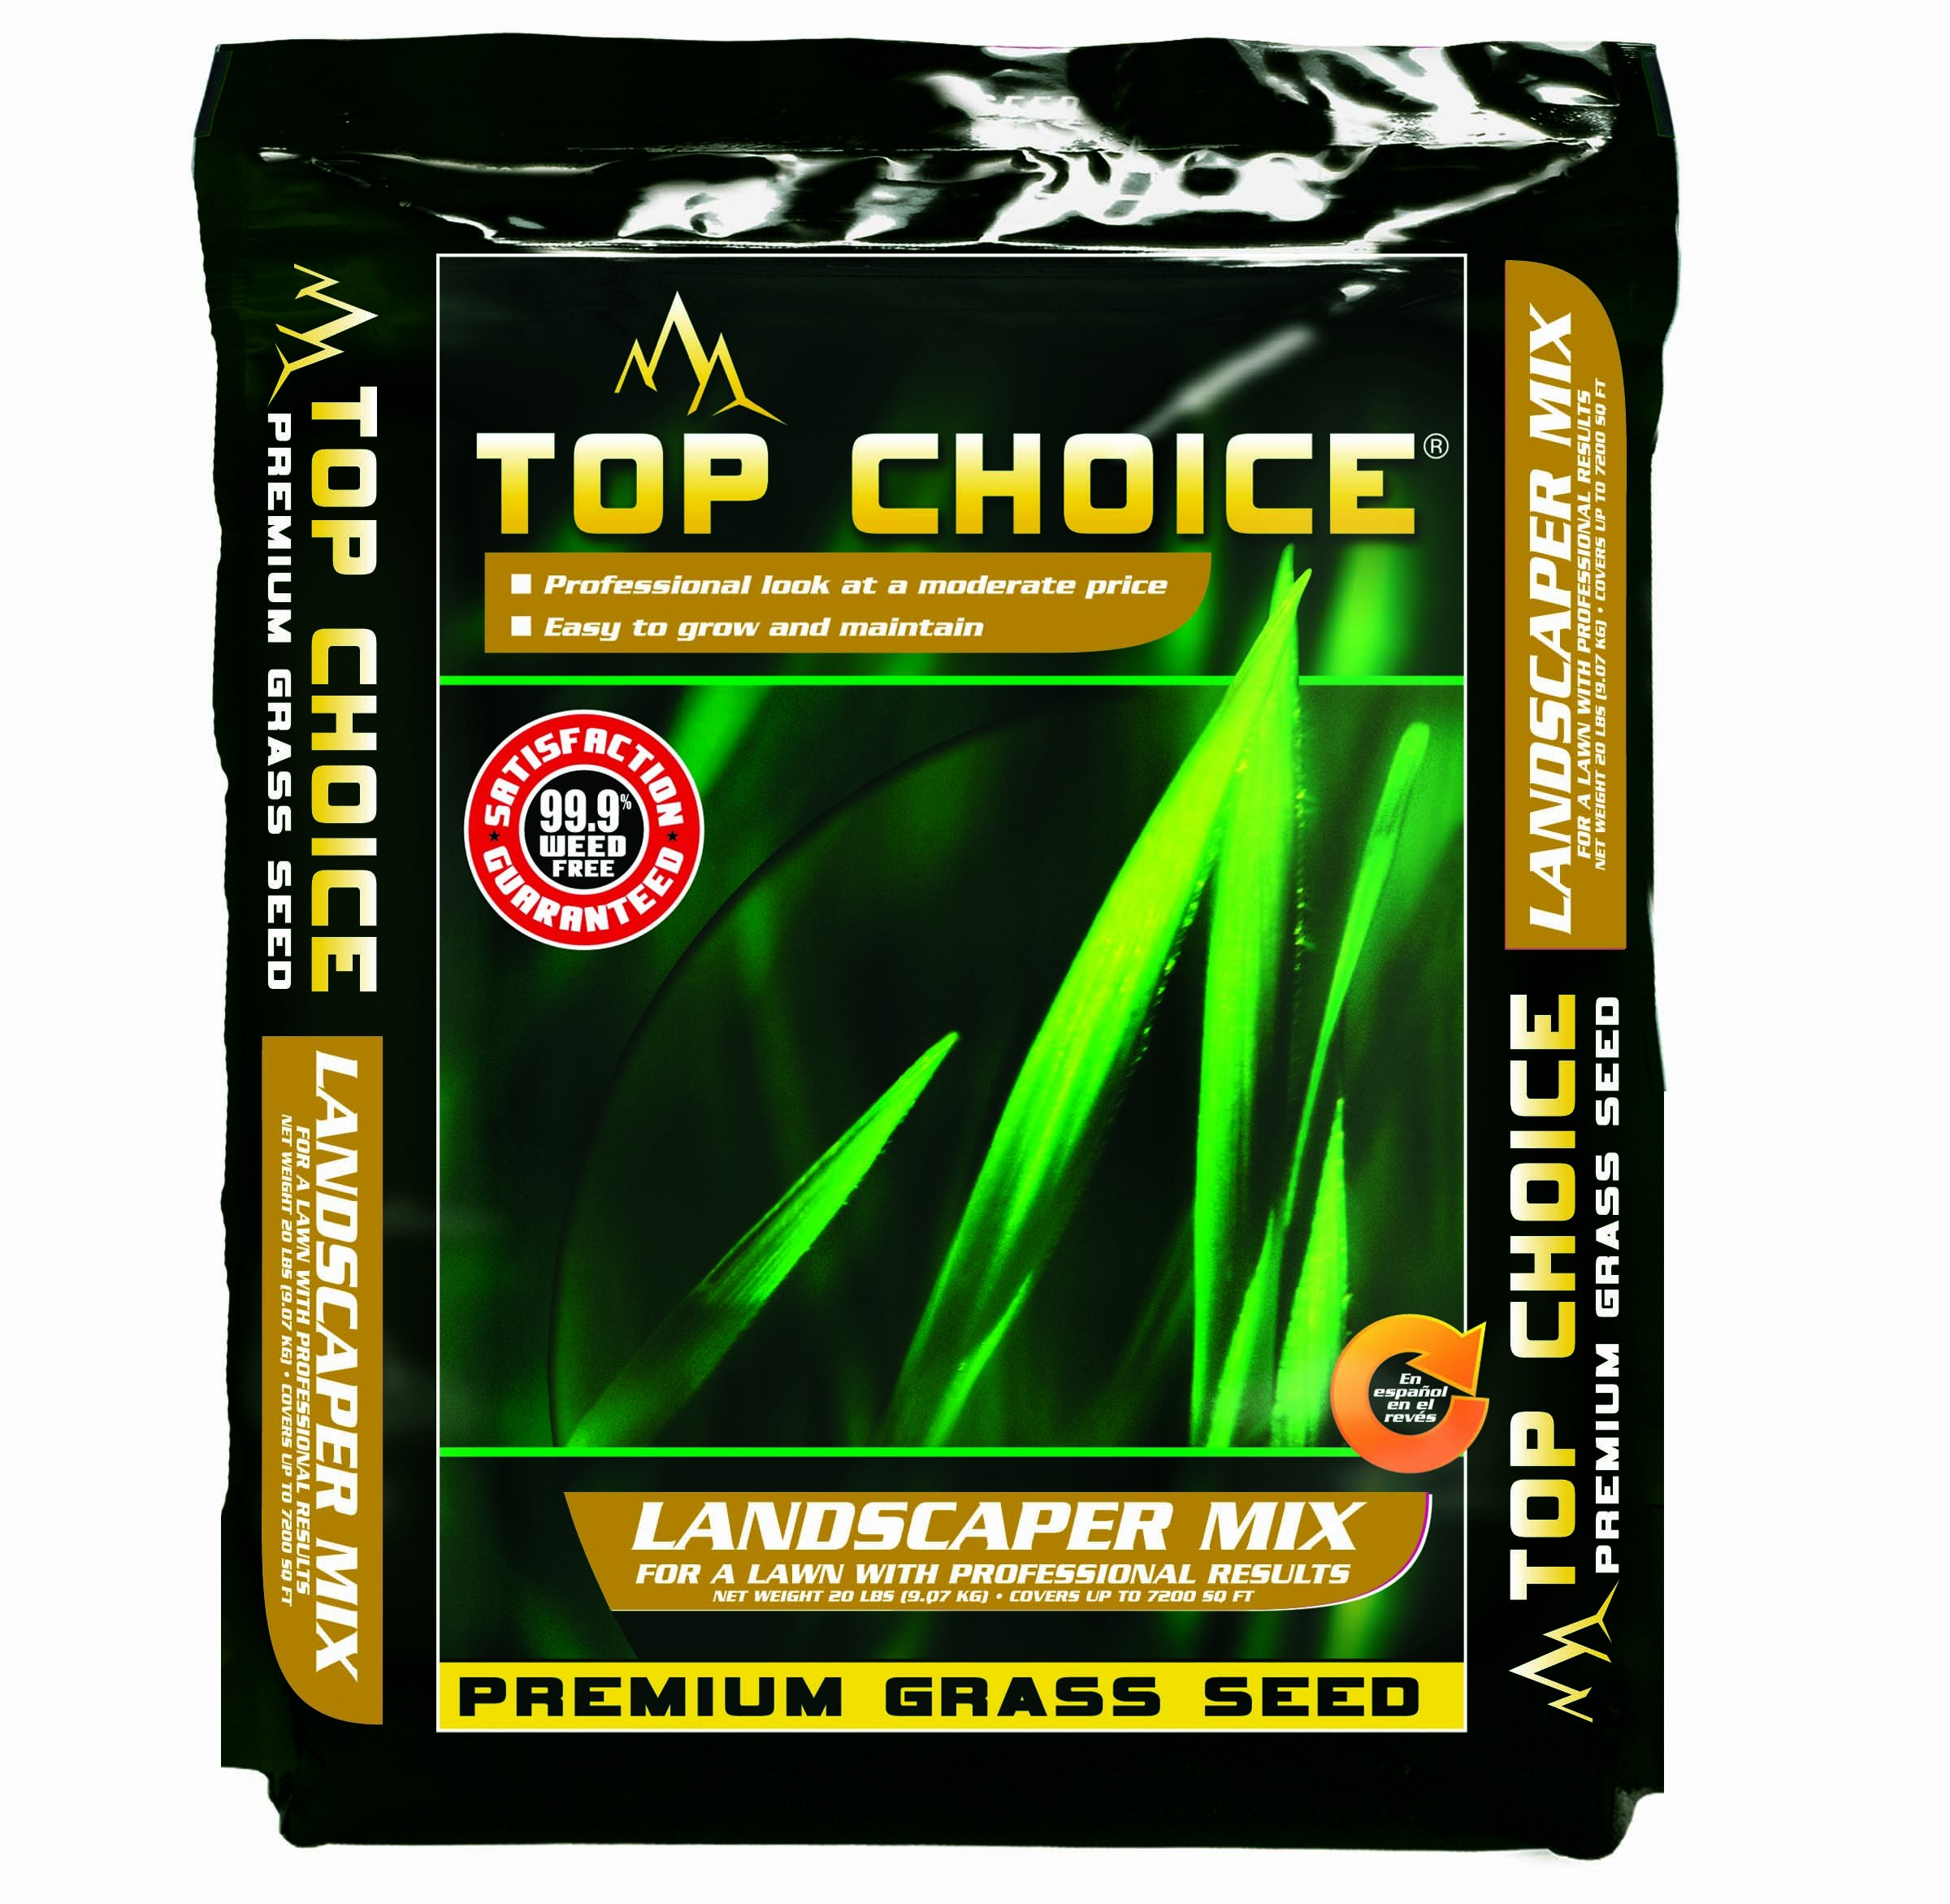 Top Choice 17624 3-Way Perennial Ryegrass Grass Seed Mixture, 20-Pound by TOPCHOICE (Image #1)